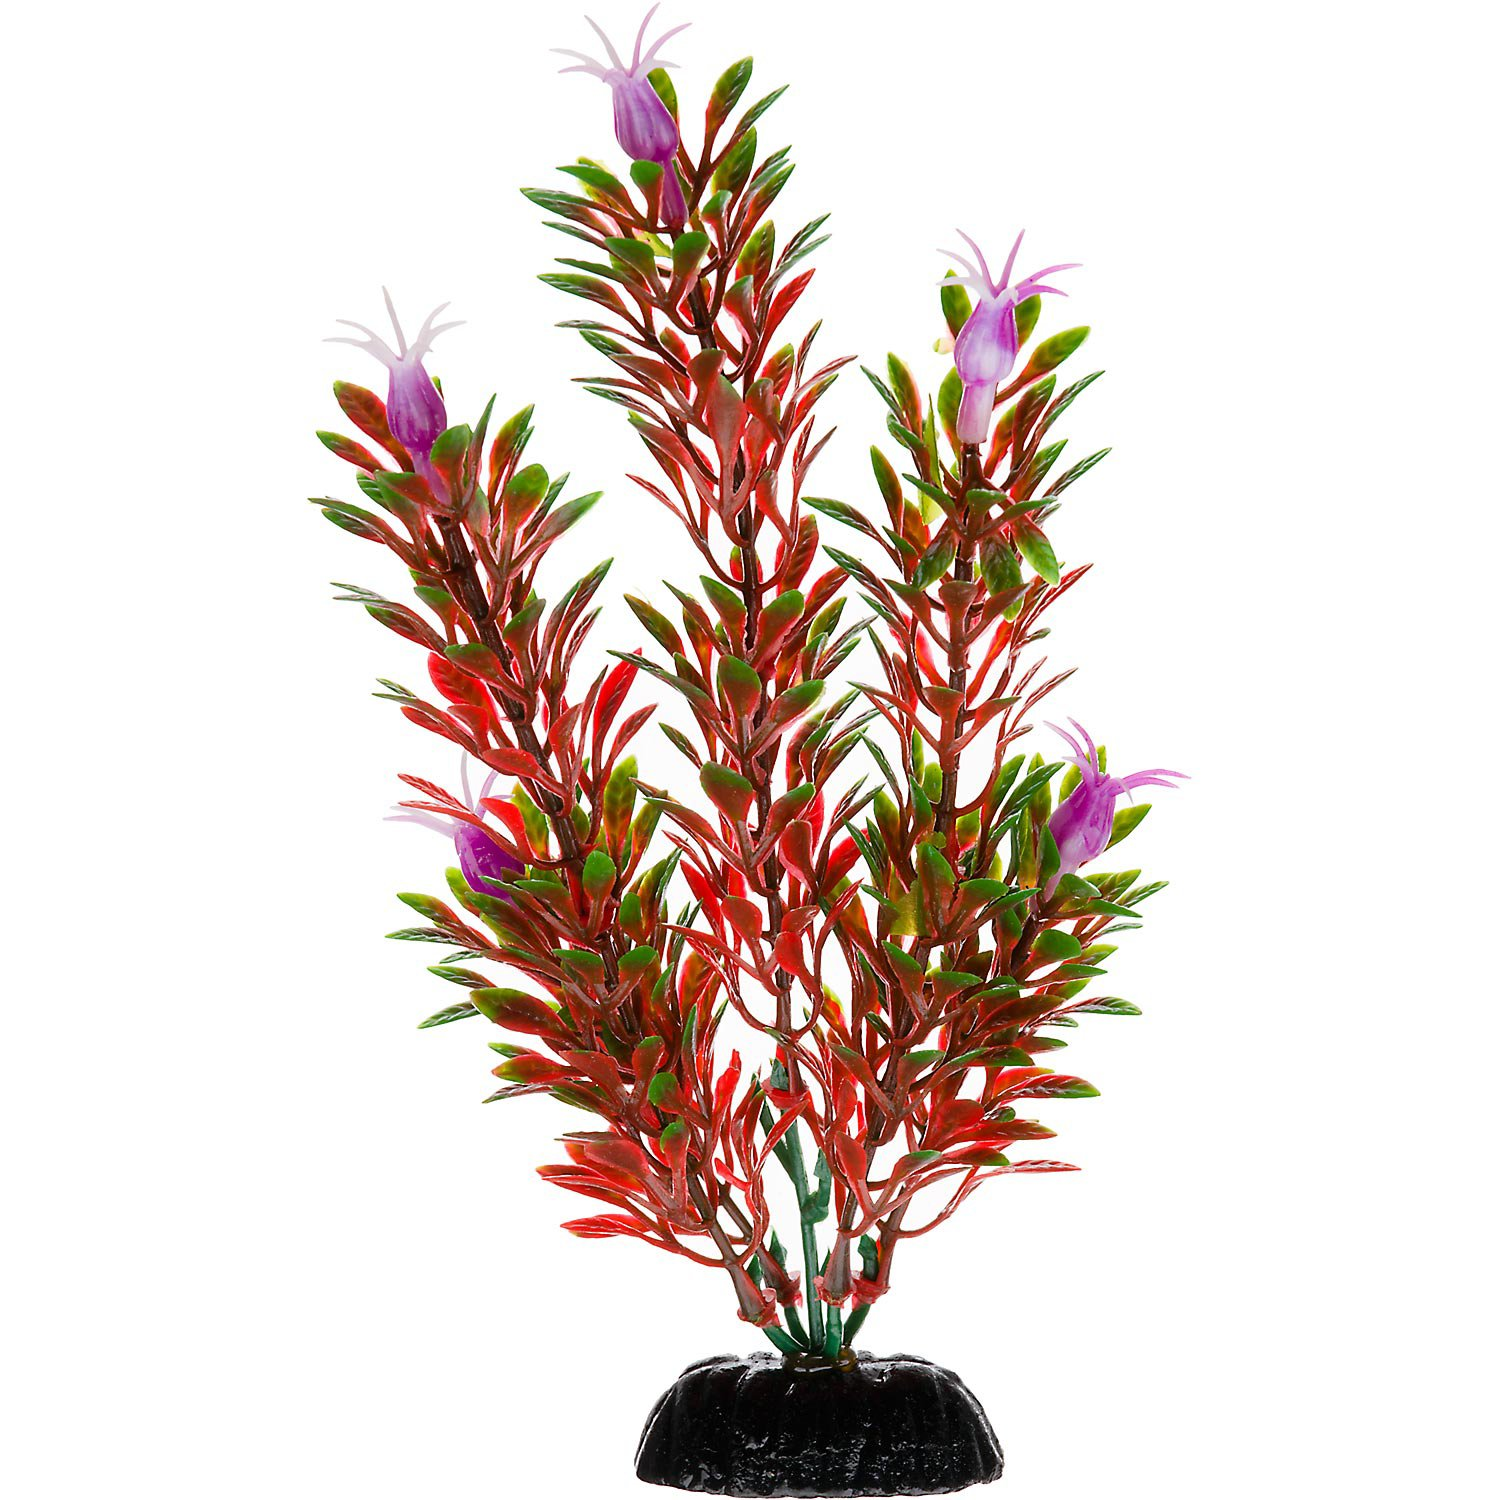 Petco Red & Green Foreground Aquarium Plant | Petco Store